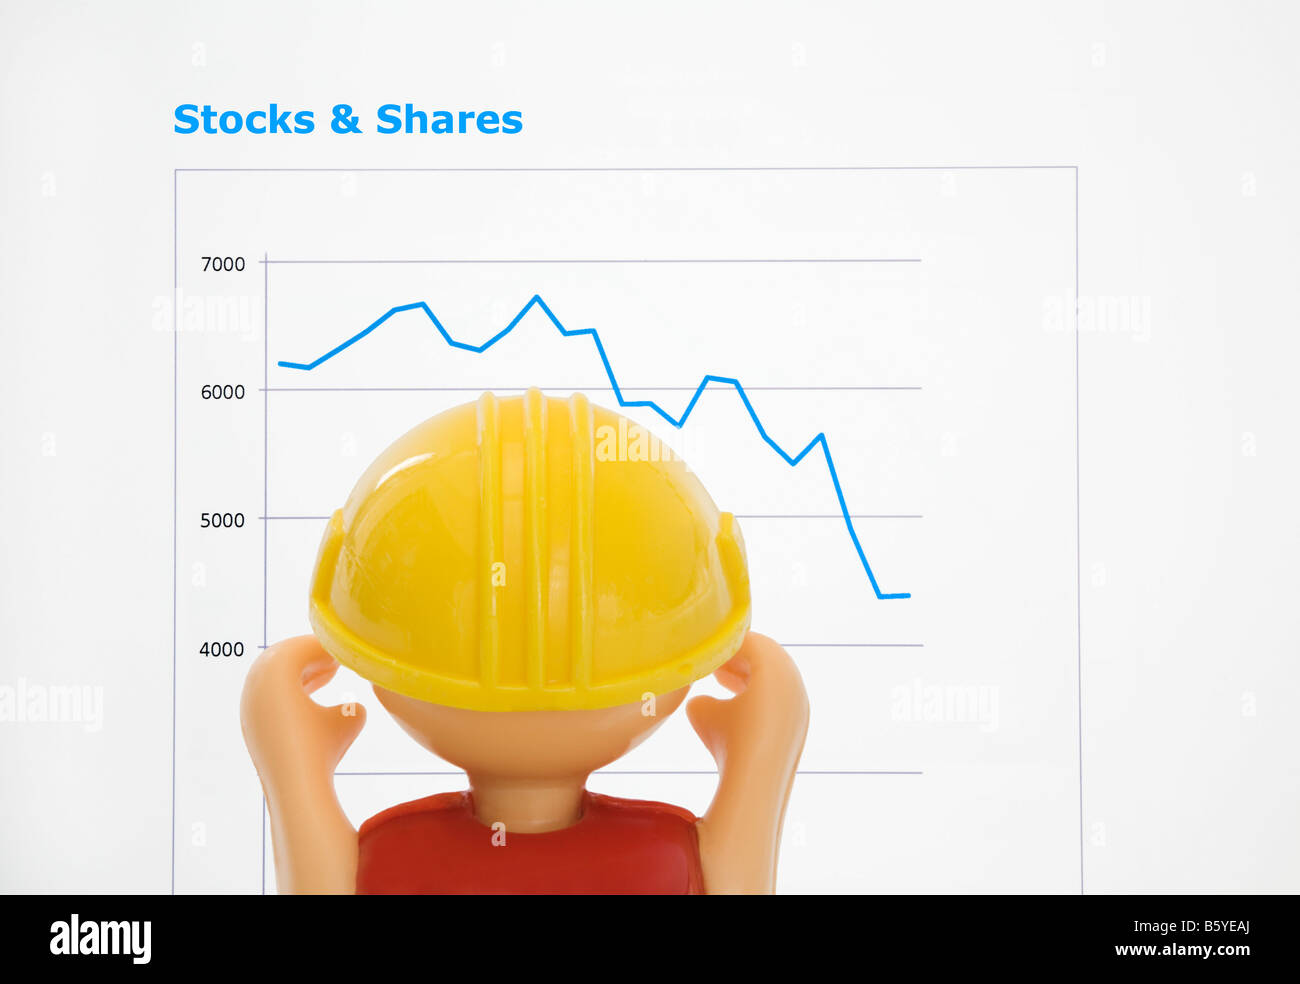 Britain UK Bob the Builder despairing at Stock market performance line graph showing FTSE 100 share prices falling - Stock Image